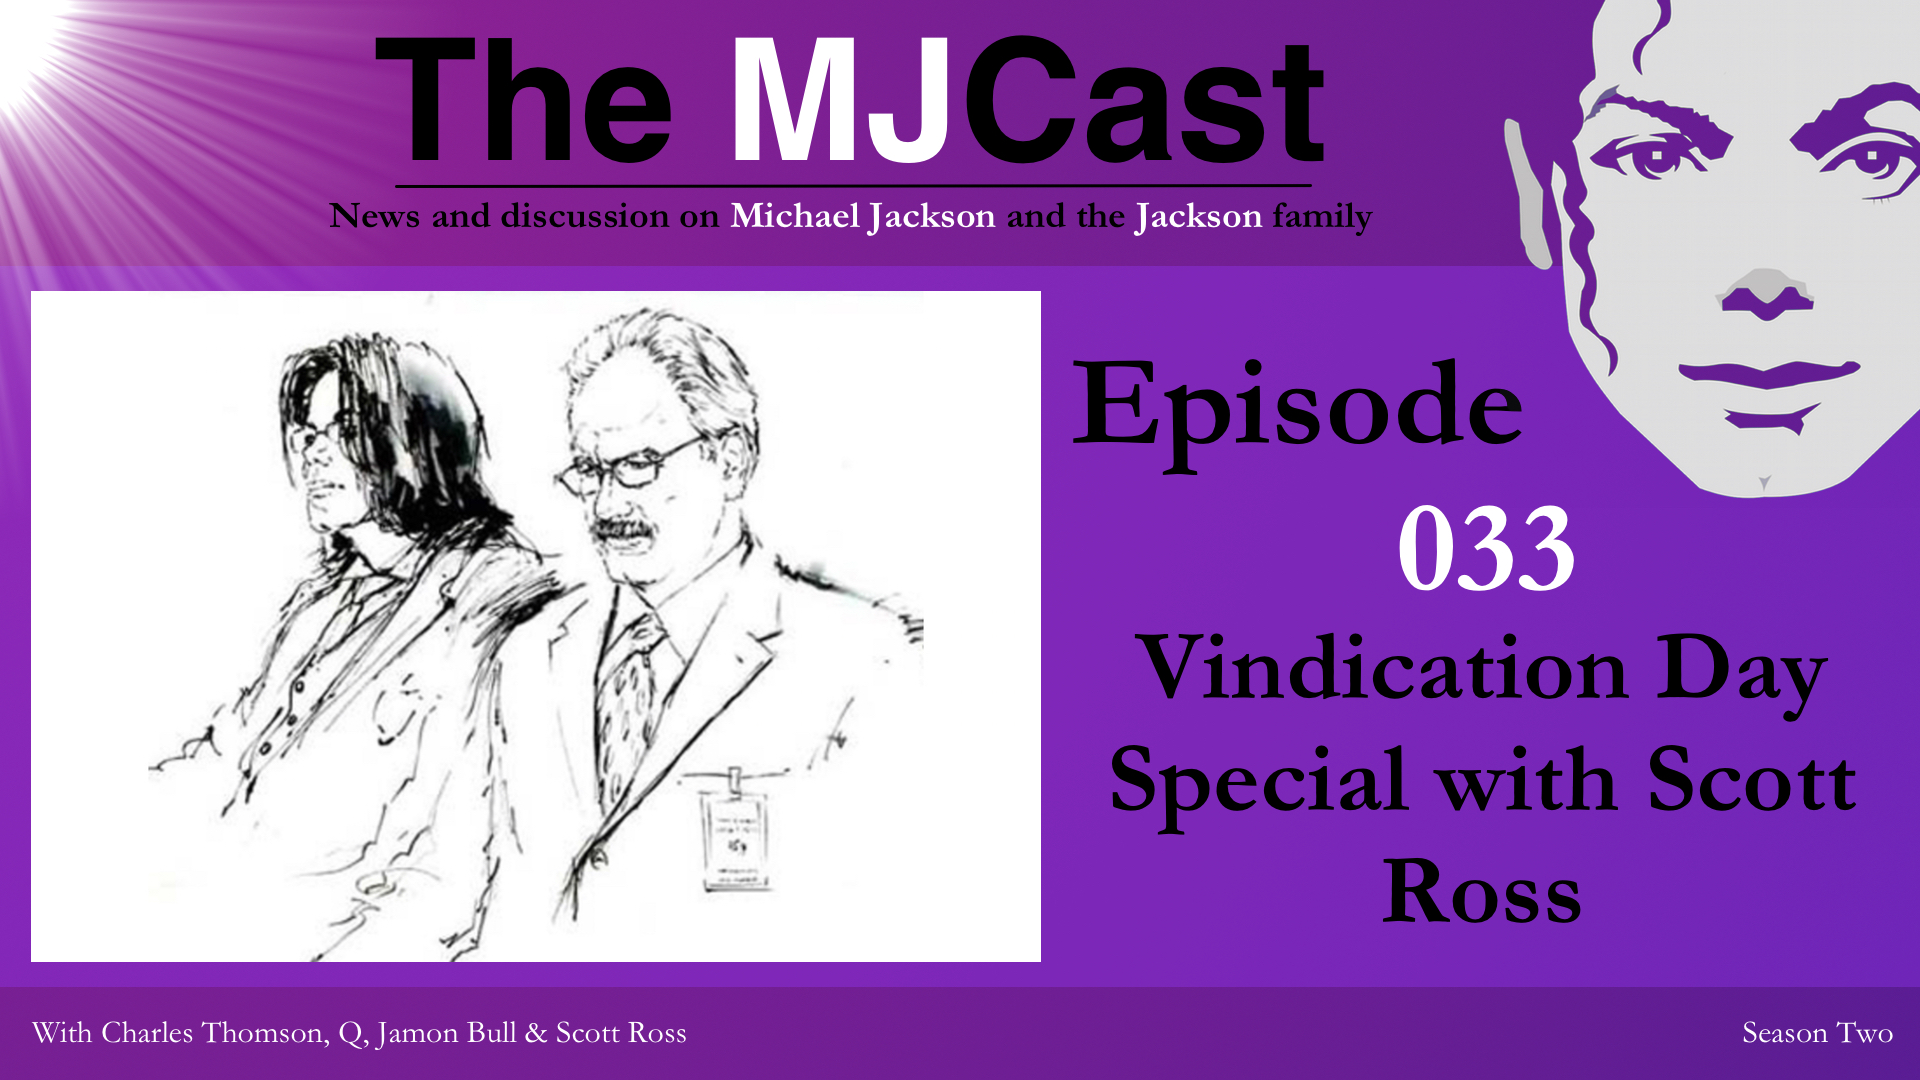 Episode 033 - Vindication Day Special with Scott Ross Show Art